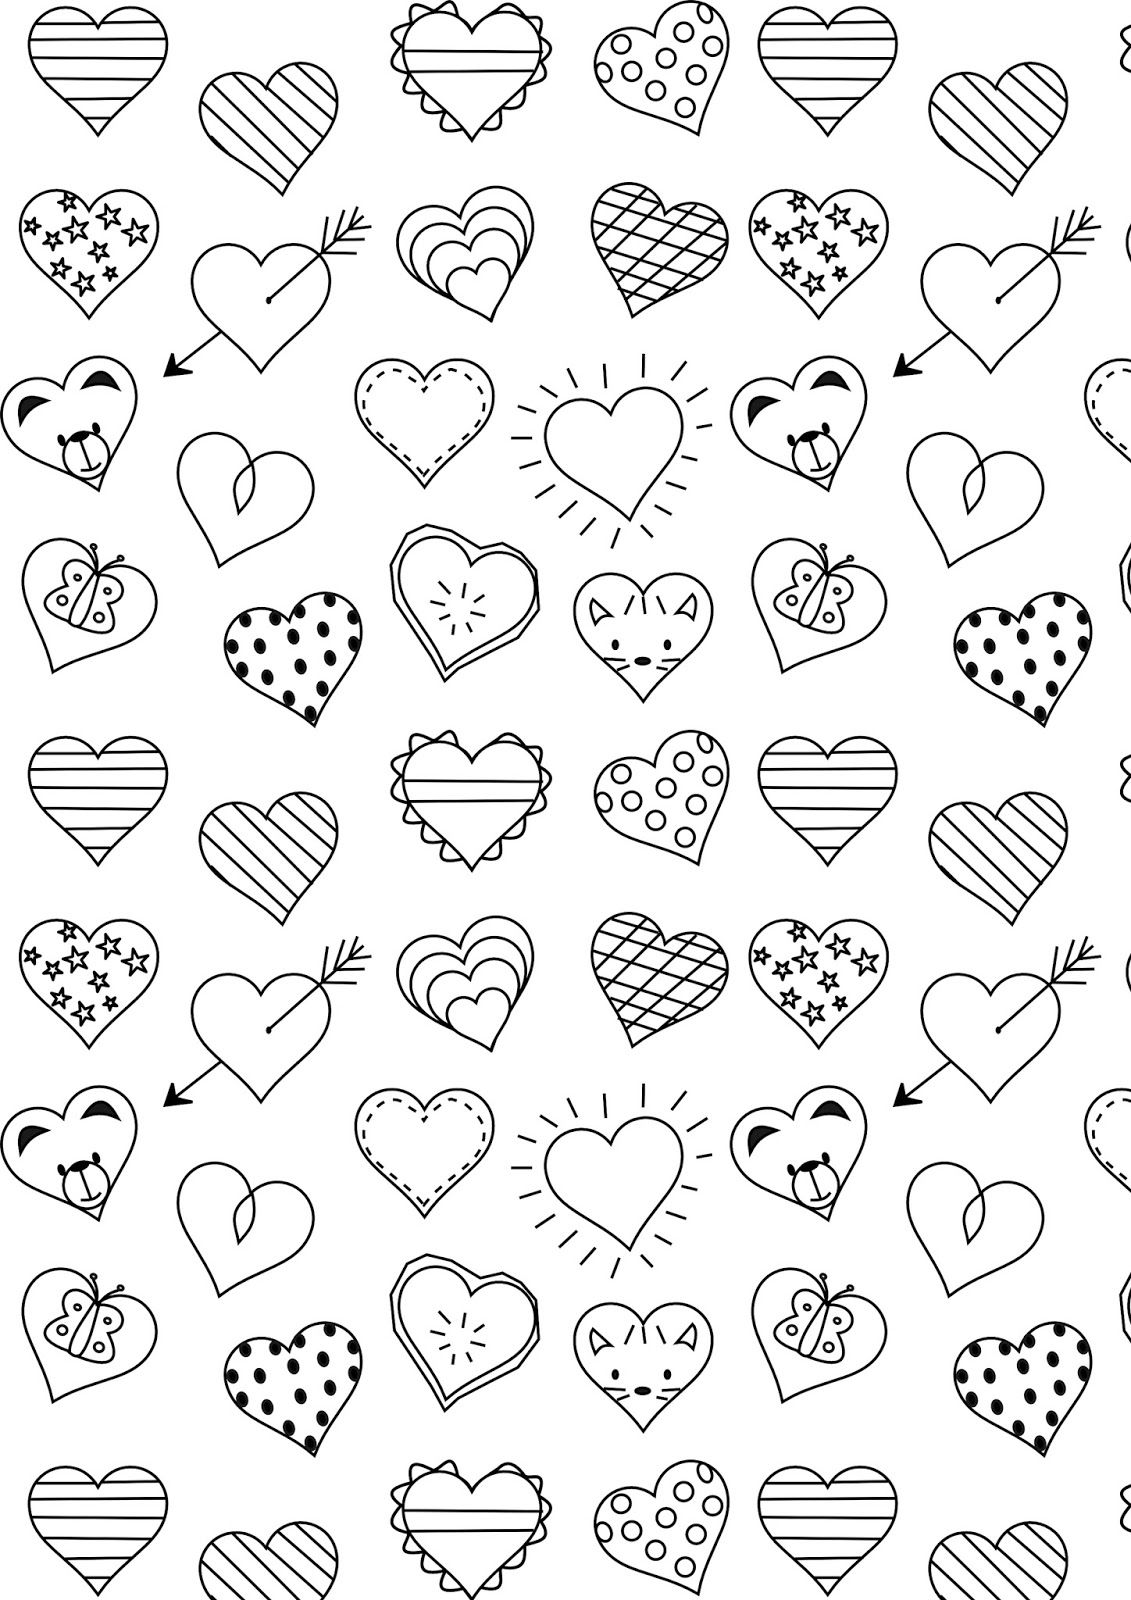 photo relating to Free Printable Heart Coloring Pages identified as Absolutely free printable middle coloring website page - ausdruckbare